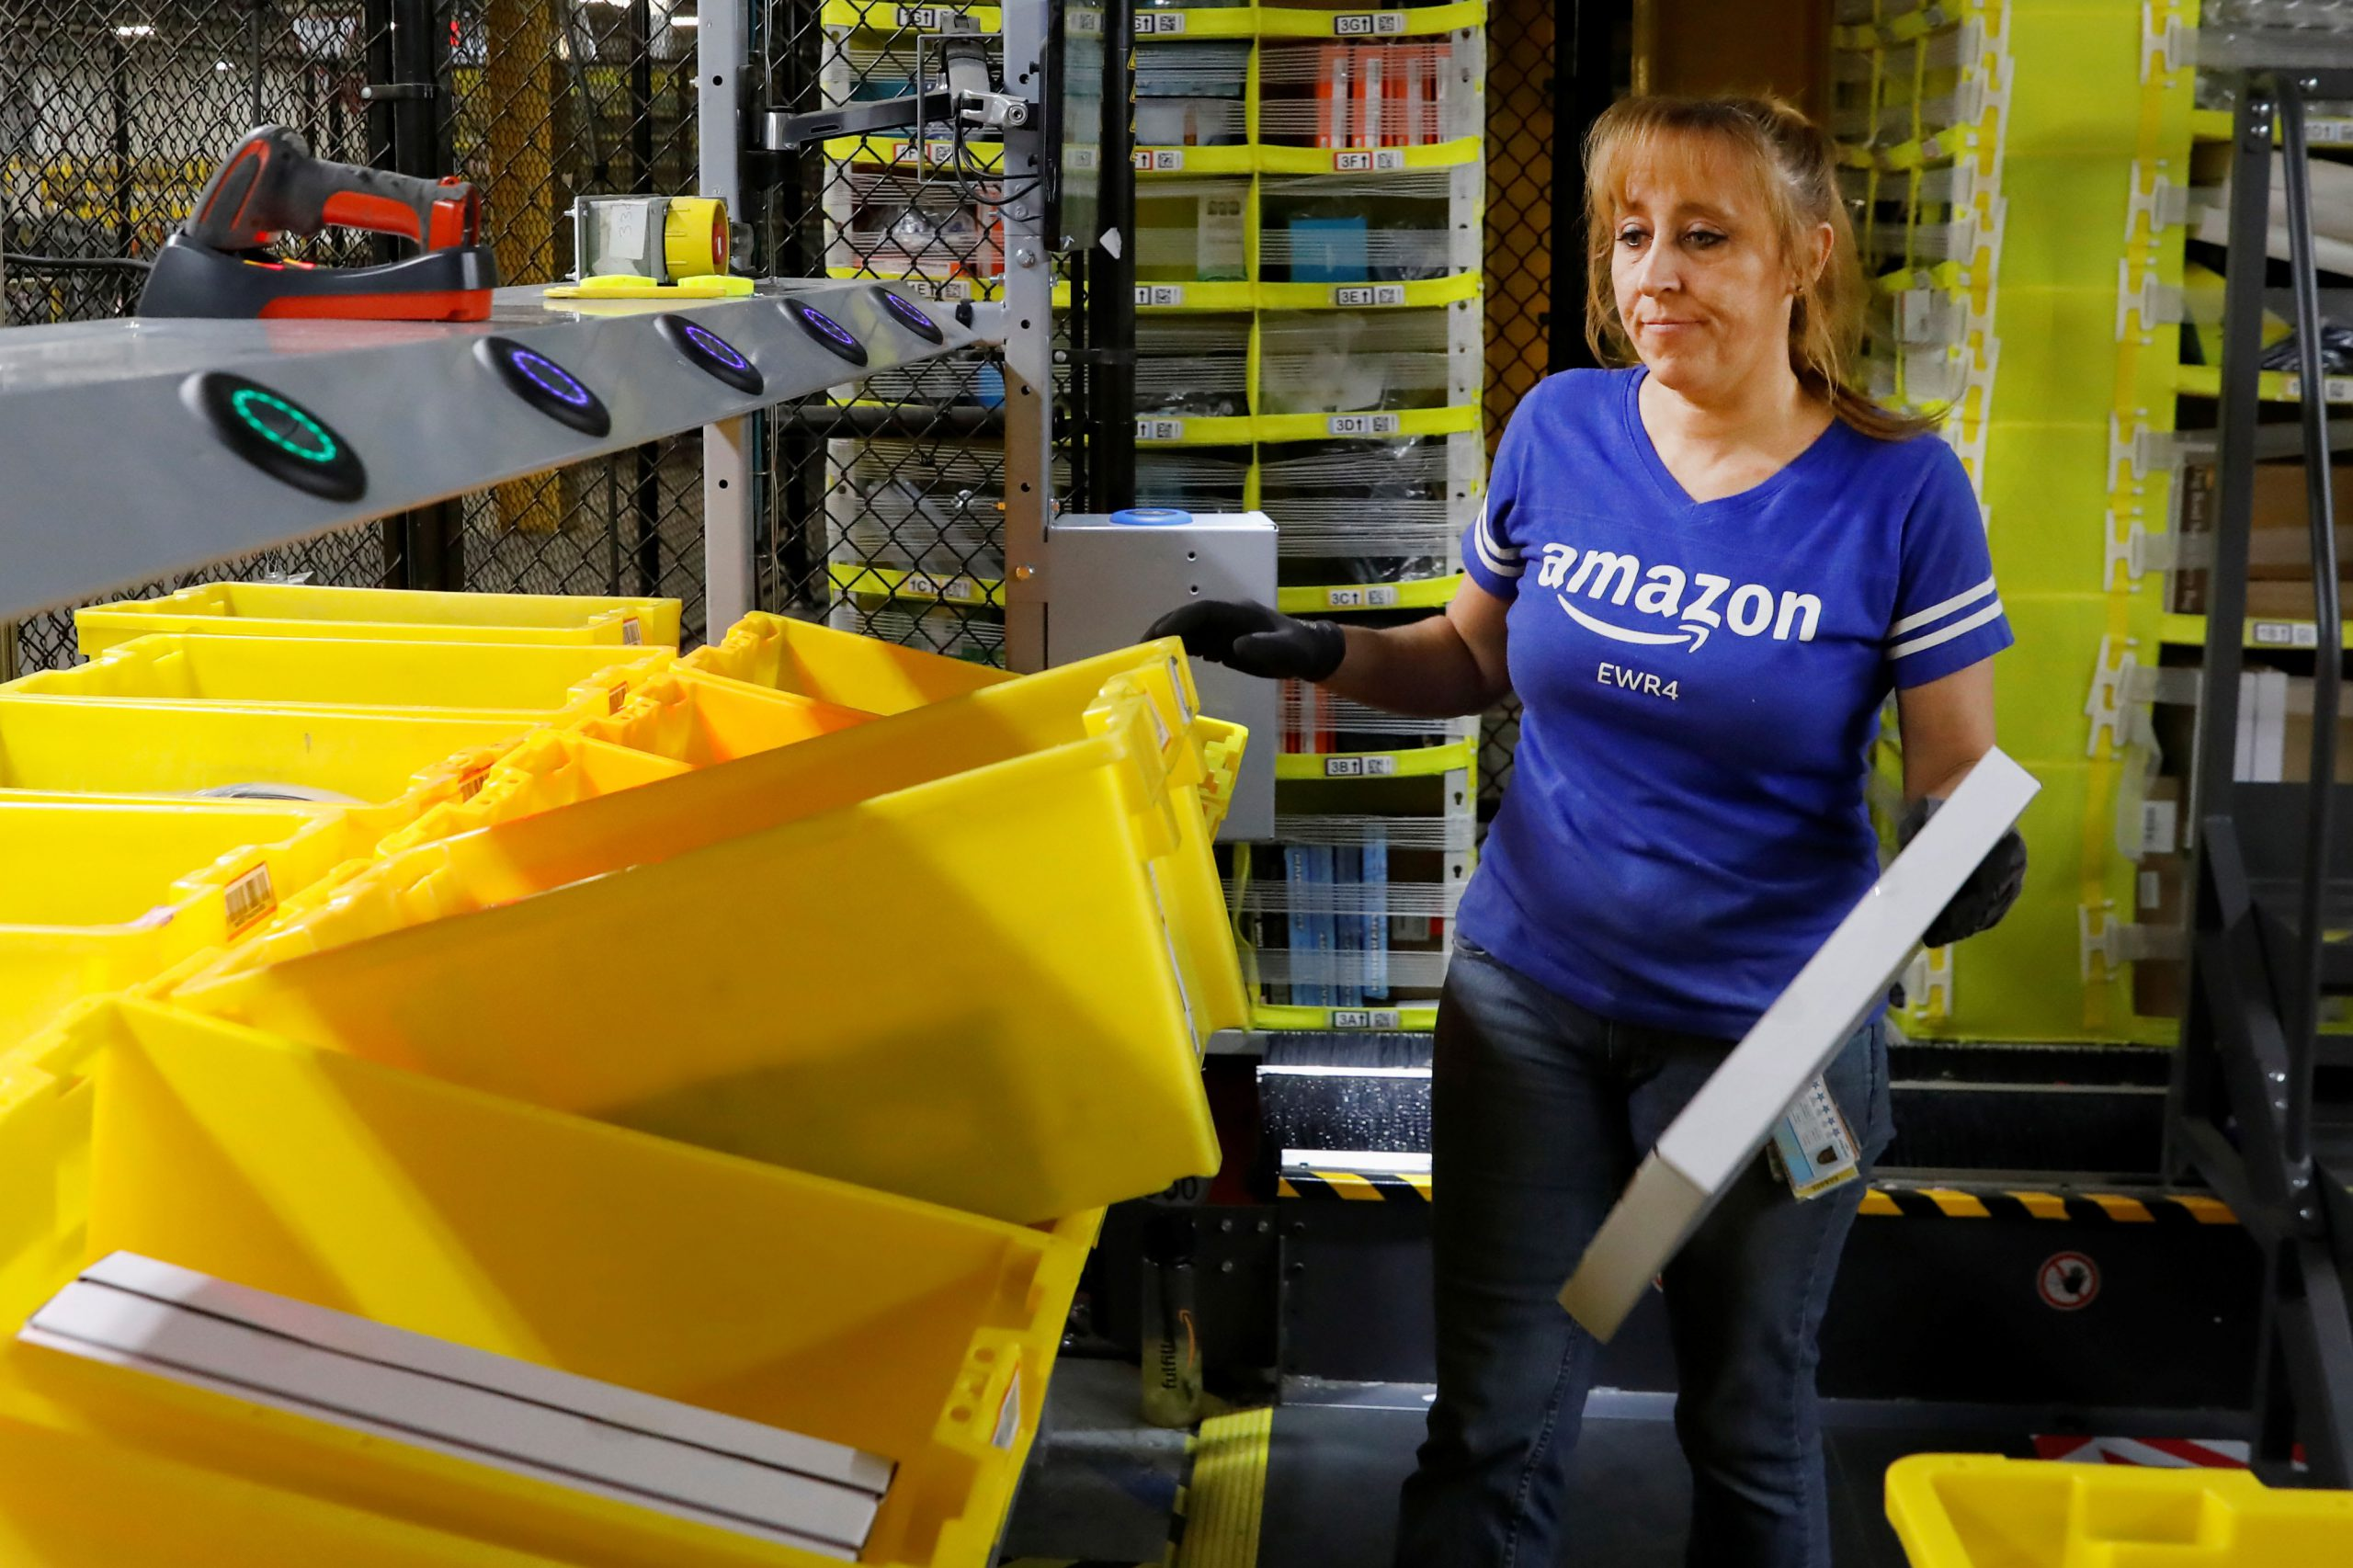 Amazon sellers are the latest casualty from the company's spat with FedEx